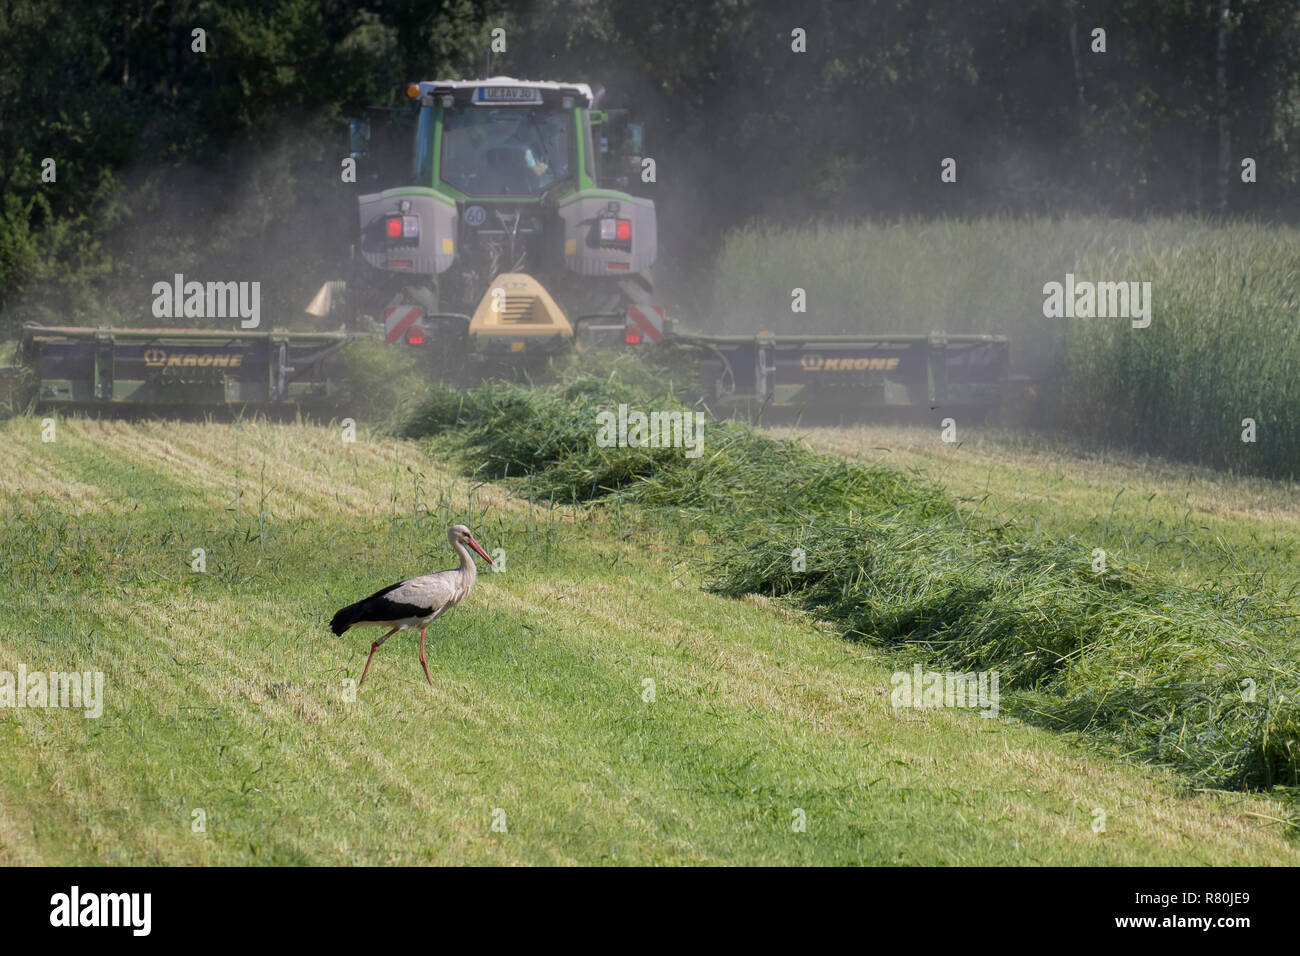 European White Stork (Ciconia ciconia). Adult foraging on a meadow next to a mowing machine. Germany Stock Photo